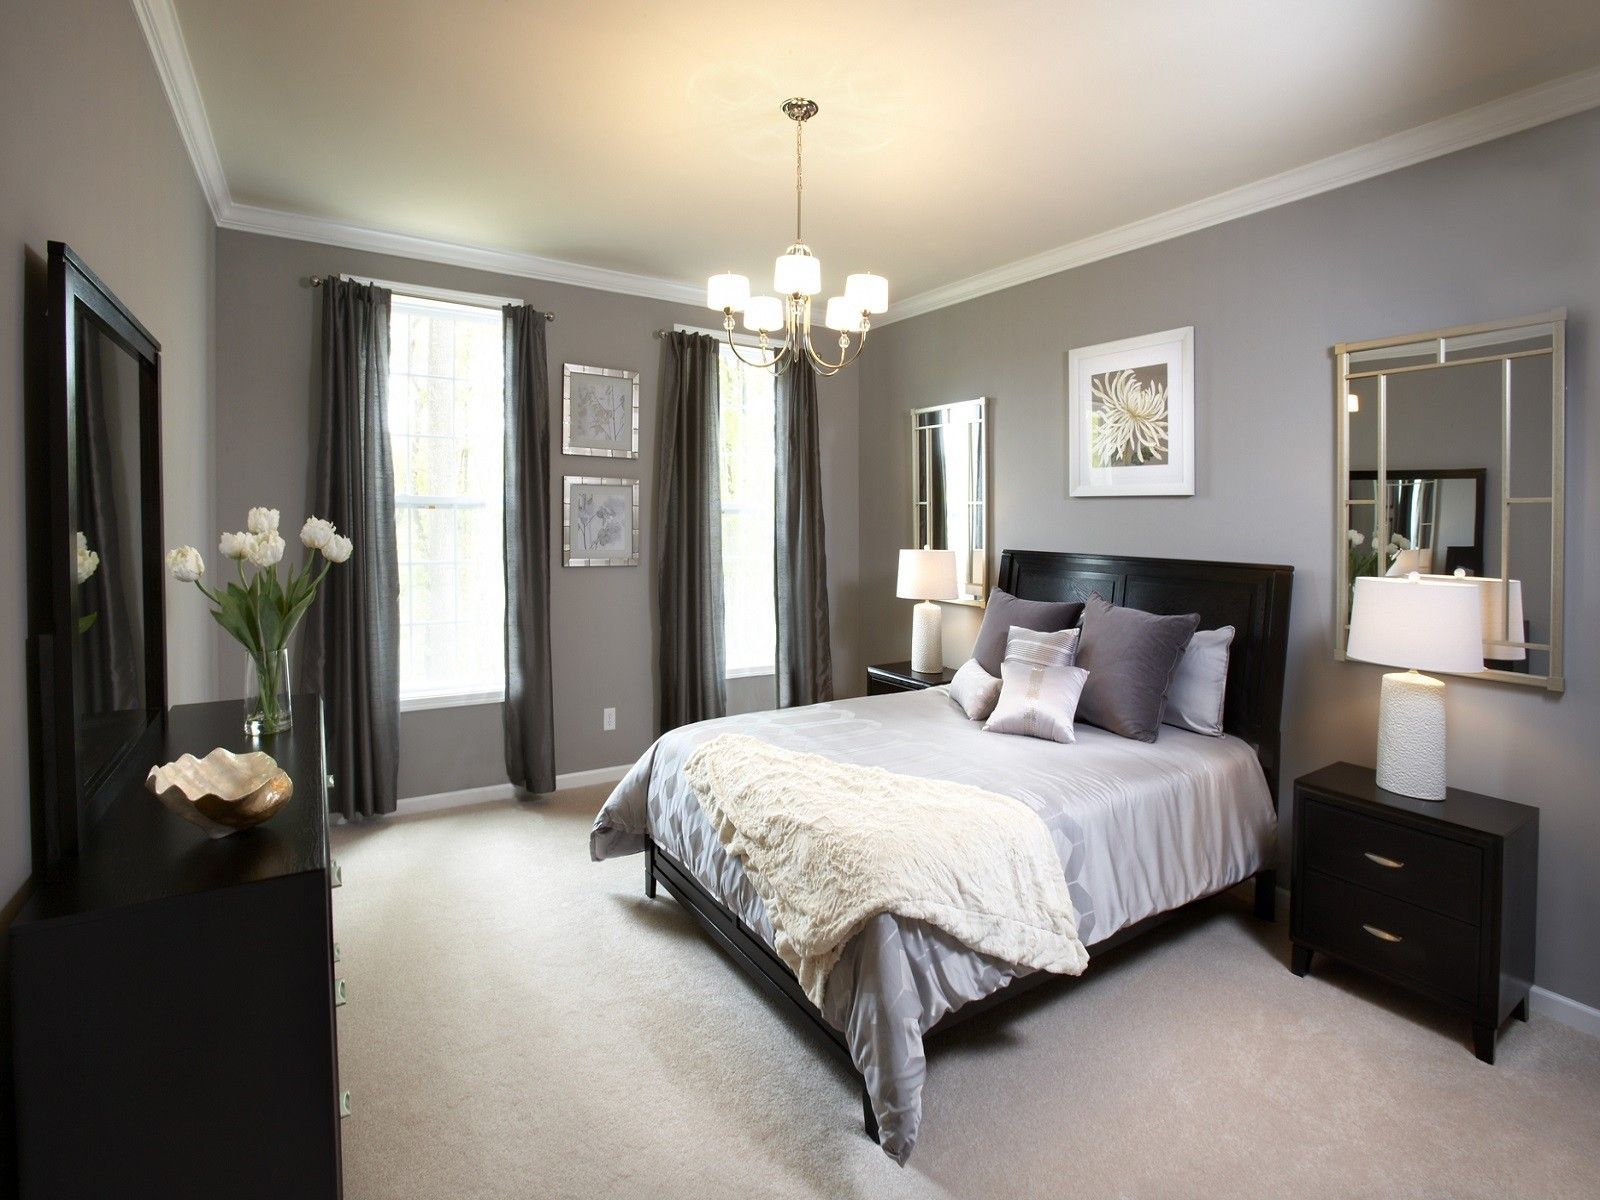 Black Bedroom Ideas Inspiration For Master Bedroom Designs Gray